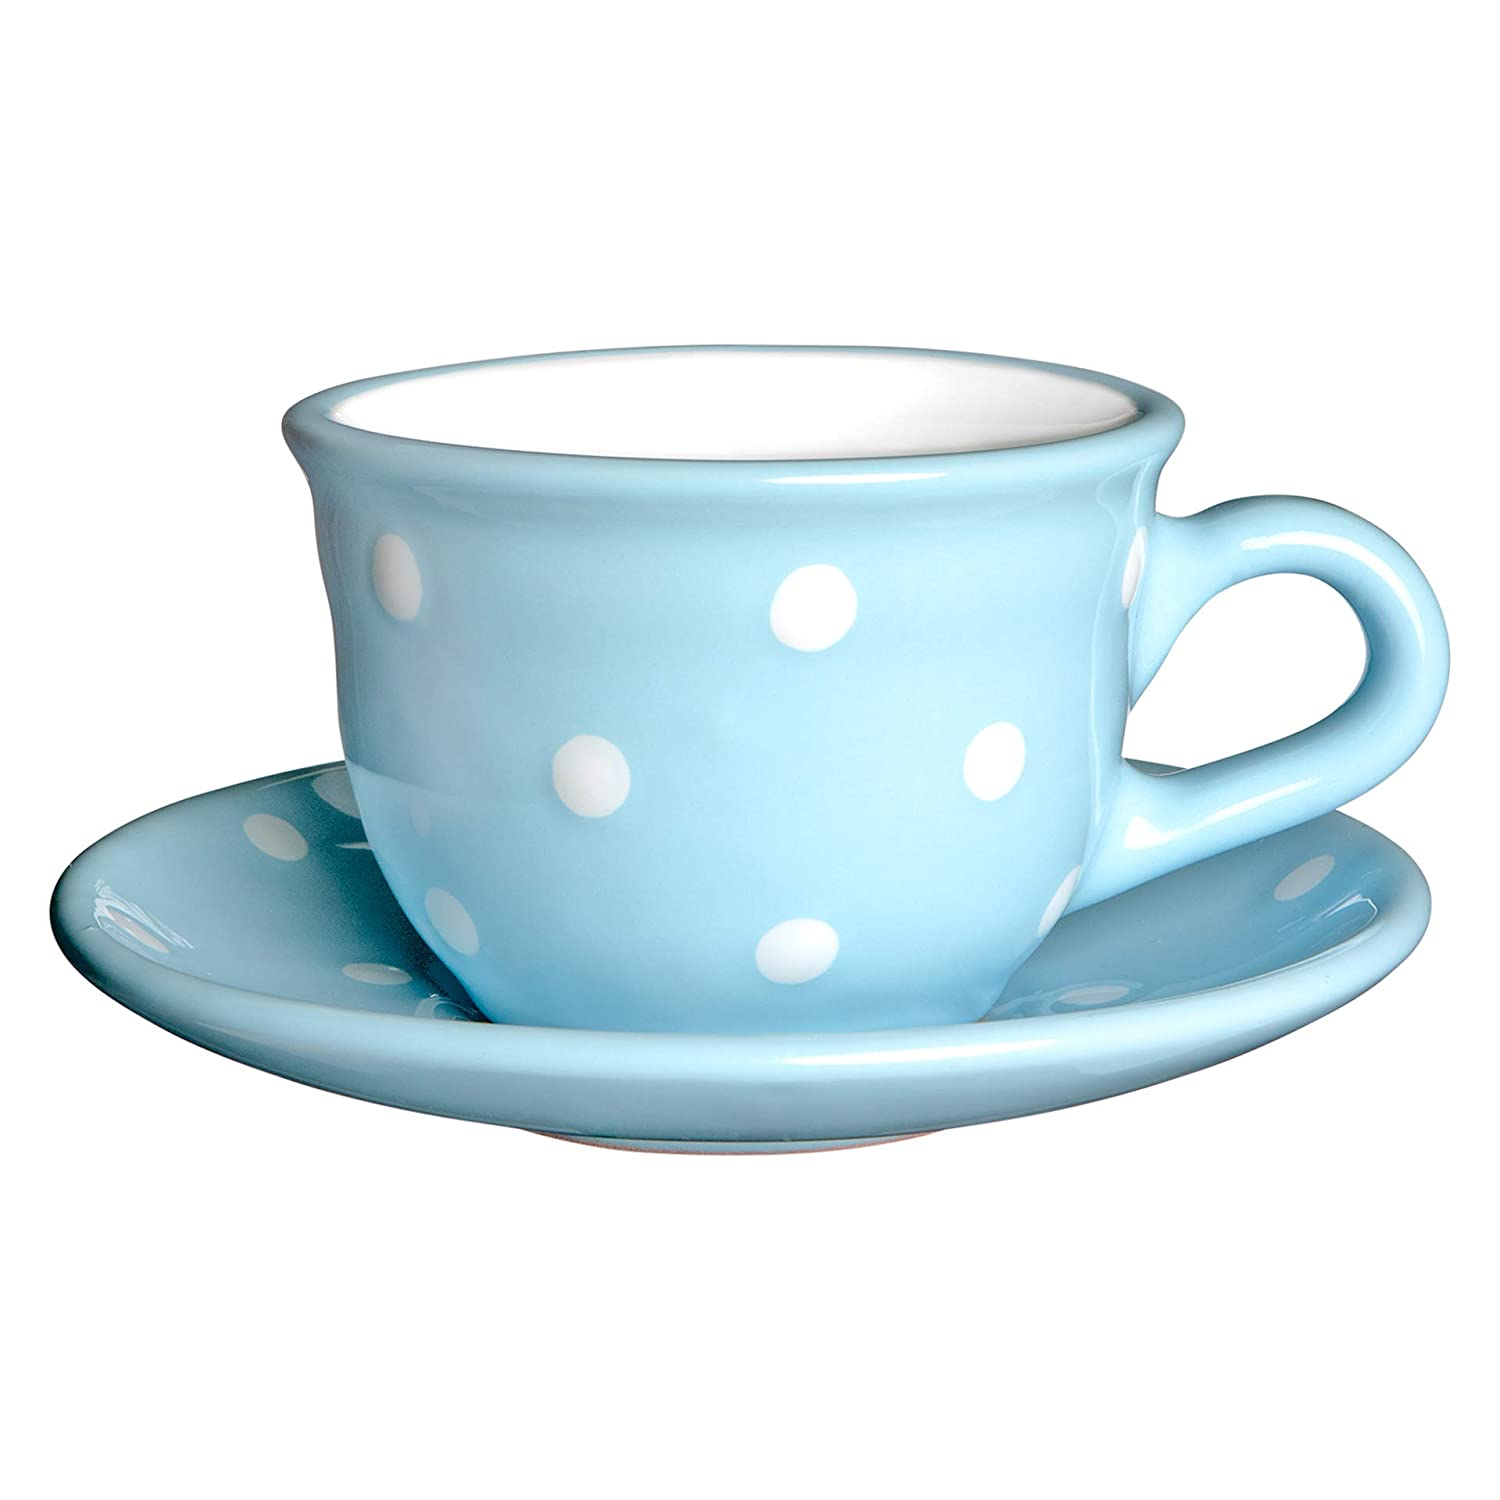 City to Cottage Light Sky Blue and White | Polka Dot Spotty | Designer Handmade Hand Painted | Unique Ceramic 9oz/250ml | Cappuccino Coffee Tea Cup with Saucer | Gift citytocottage.co.uk